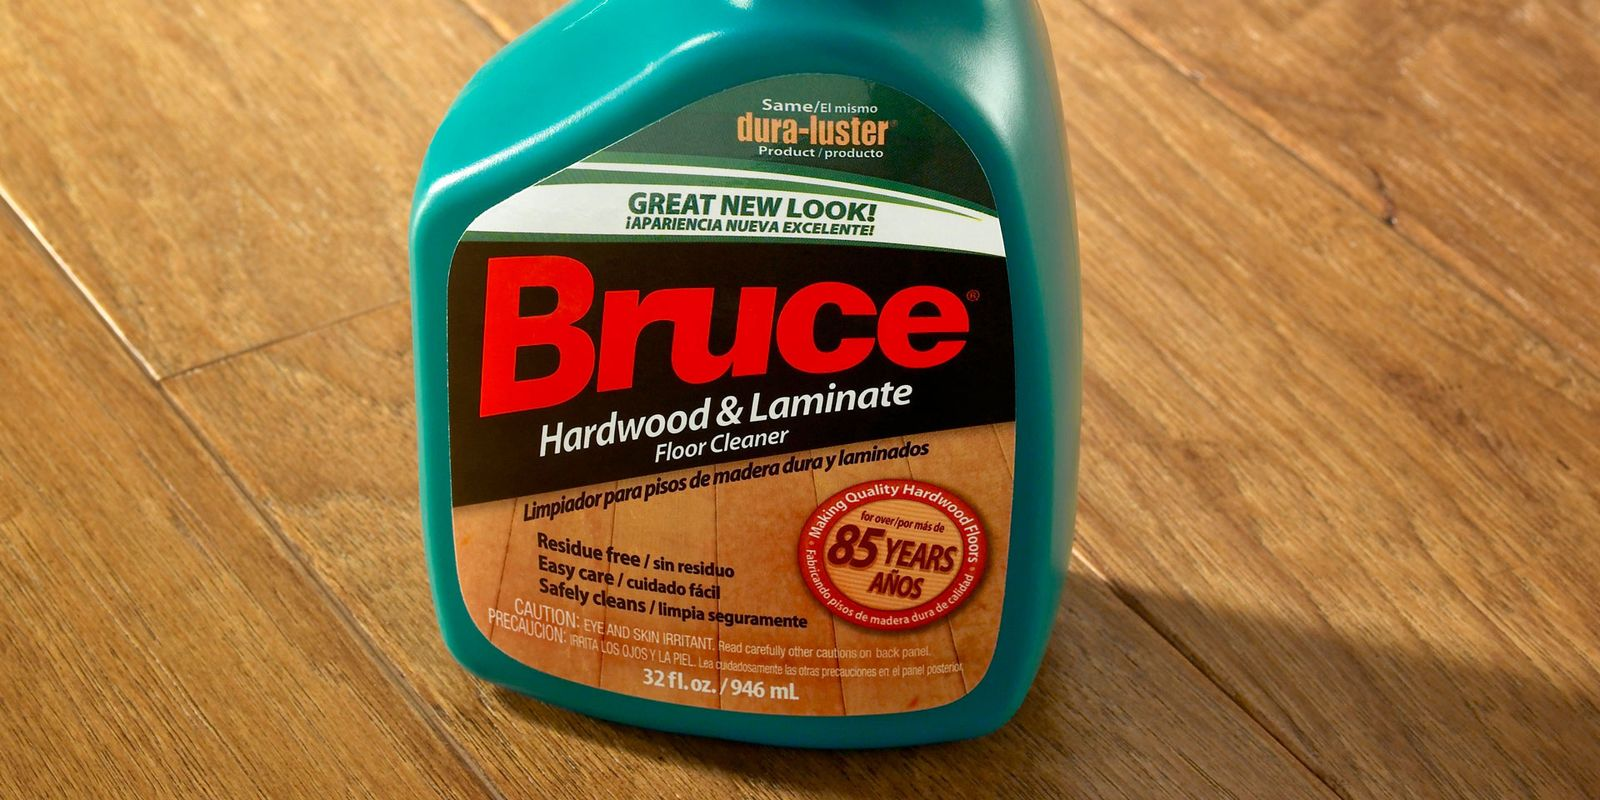 Bruce hardwood and laminate floor cleaner review for Hardwood floor cleaner